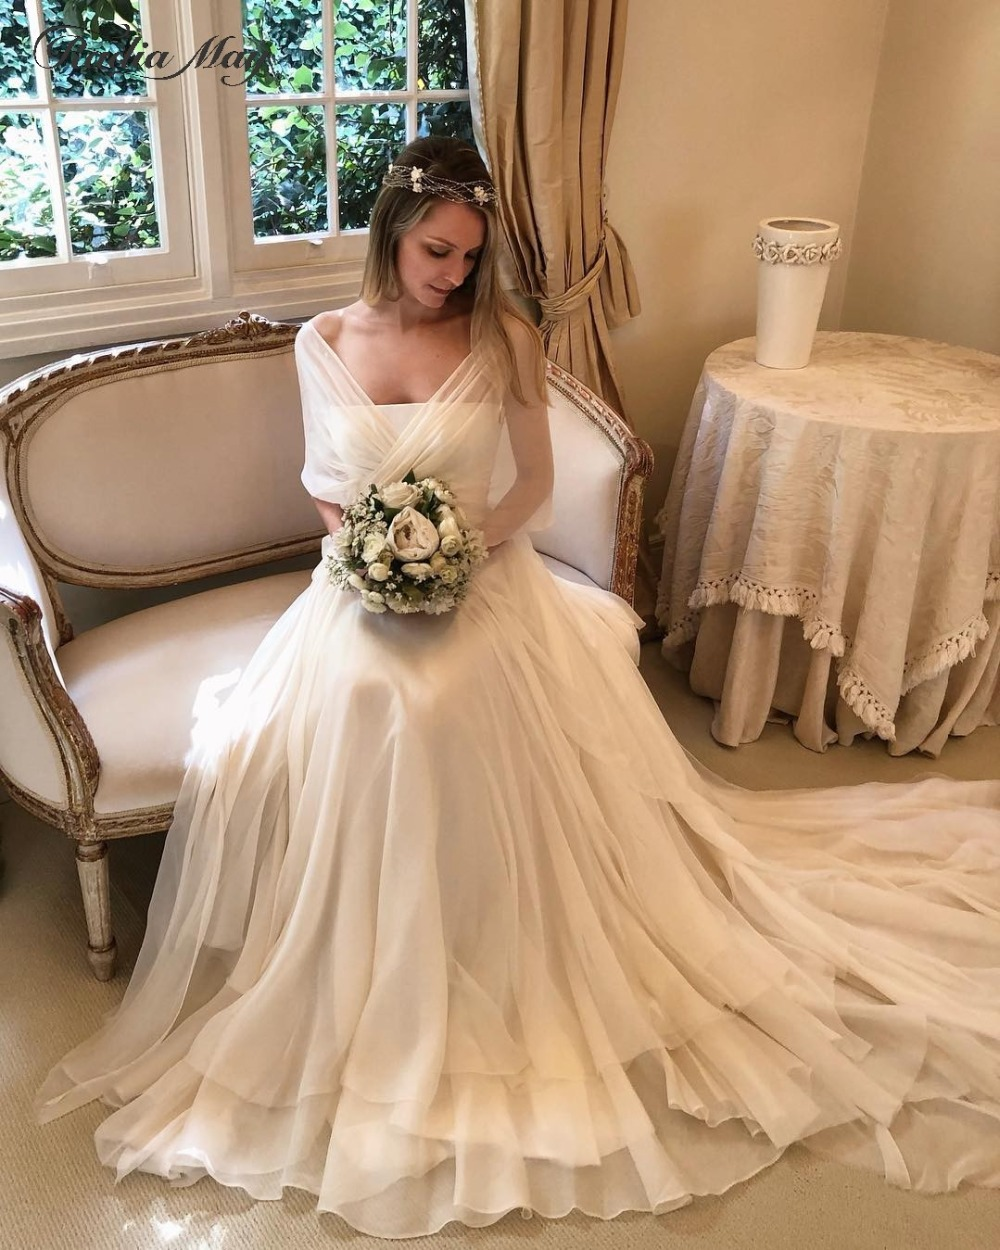 Boho Ivory Chiffon Country Western Wedding Dresses with Cap Sleeves Sexy V-Neck Backless Beach Garden Wedding Dress 2019 Vintage